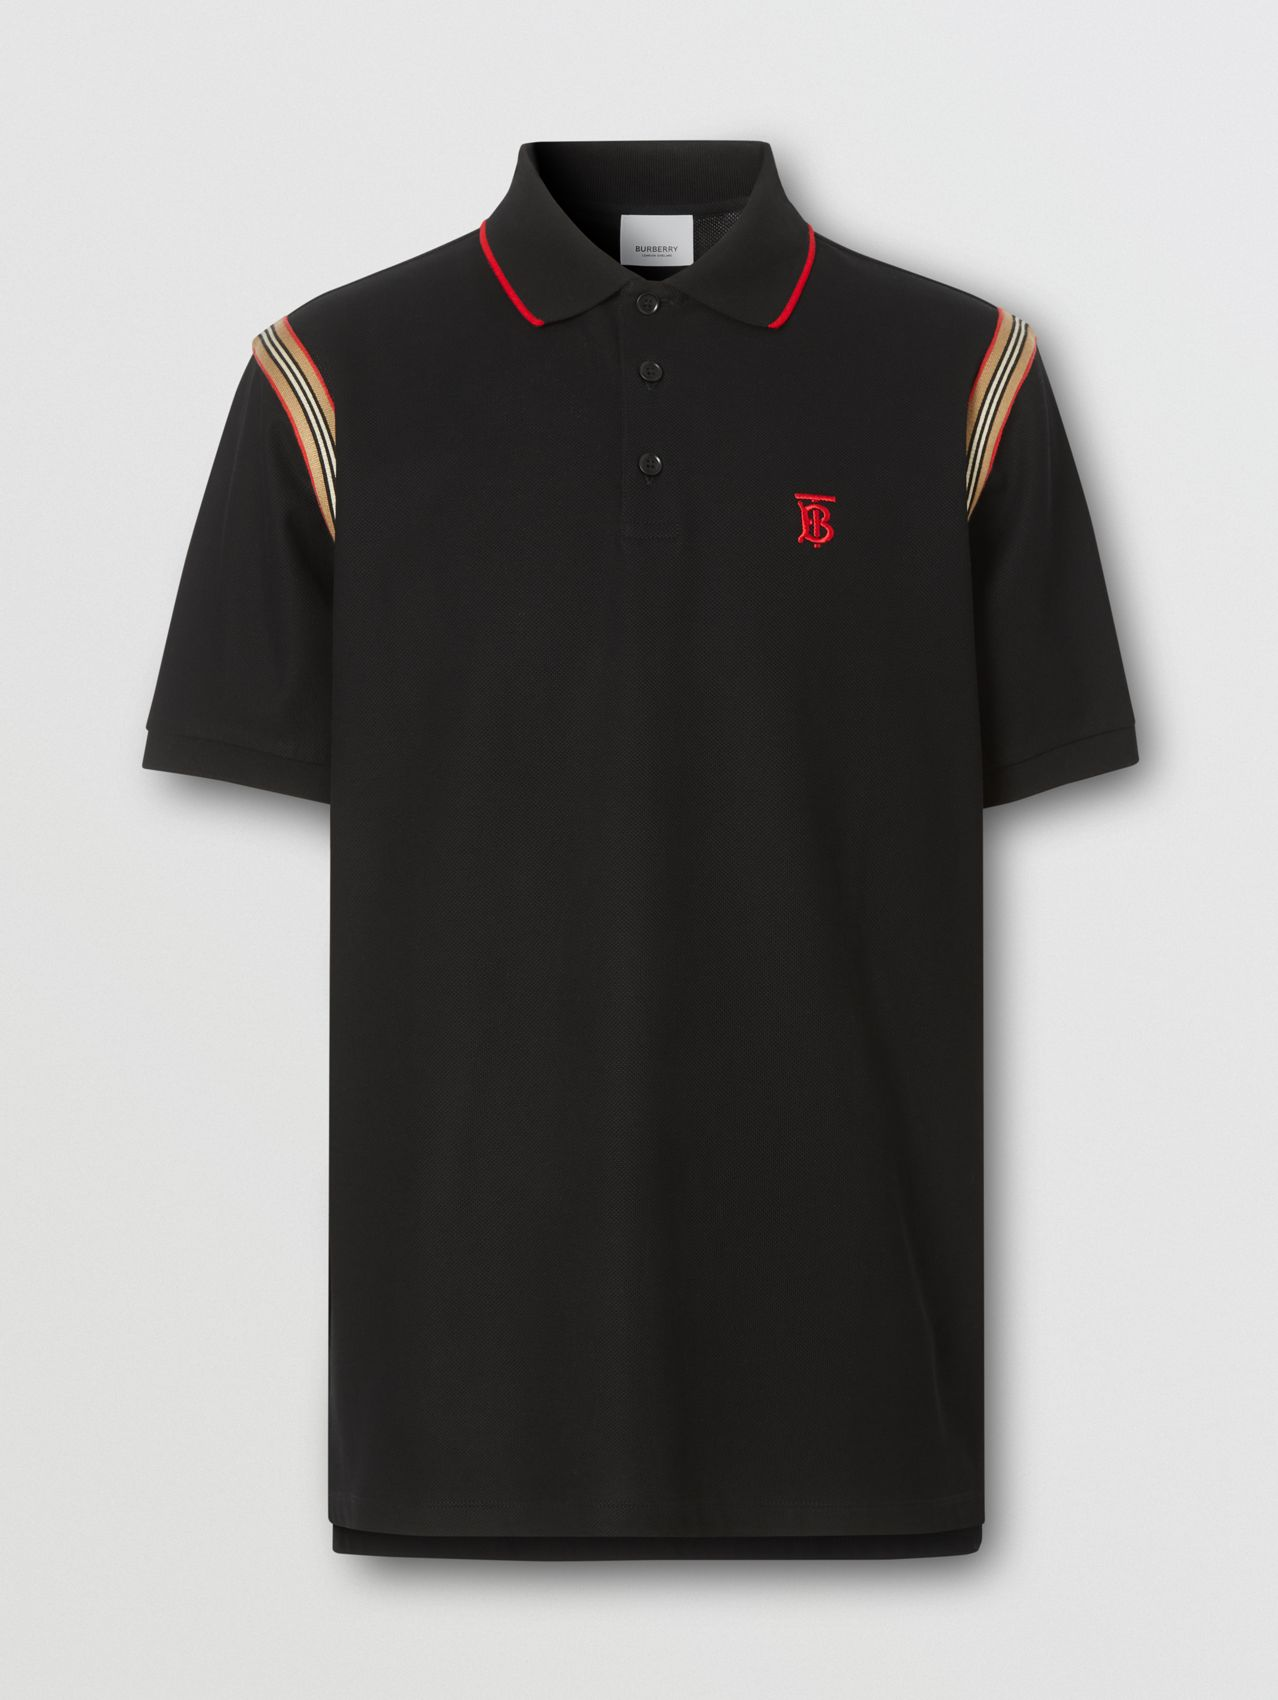 Icon Stripe Trim Monogram Motif Cotton Polo Shirt (Black)